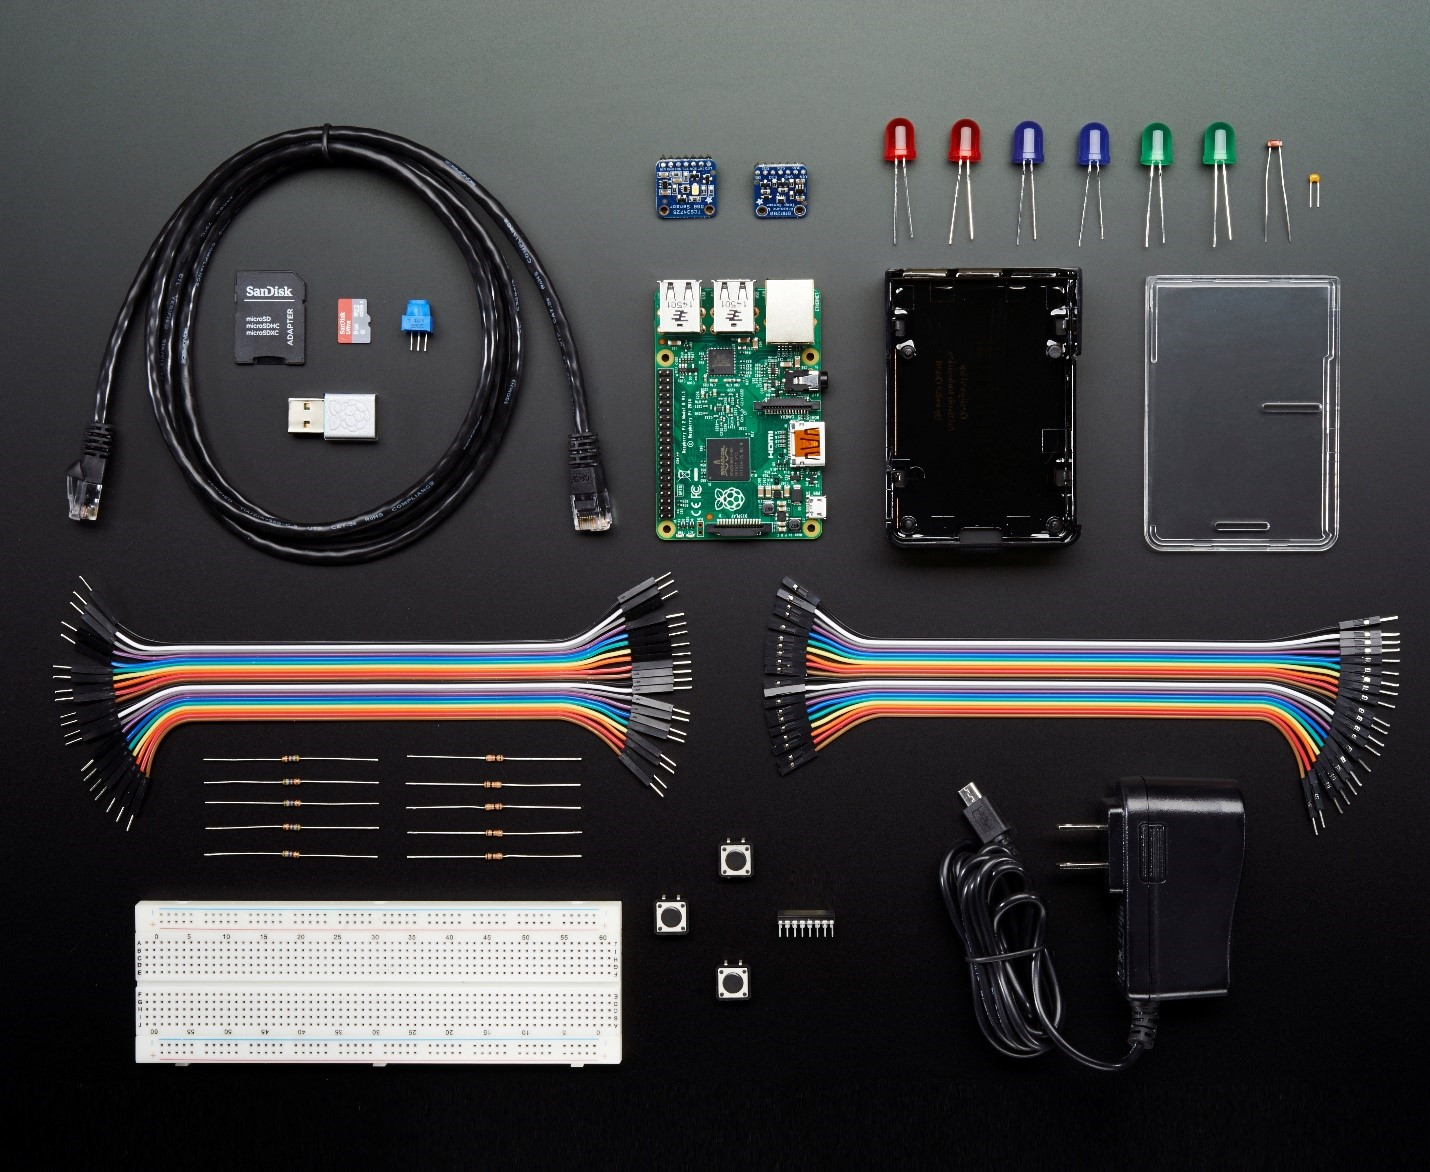 Microsoft Shows Off Hardware For Windows 10 IoT Platform